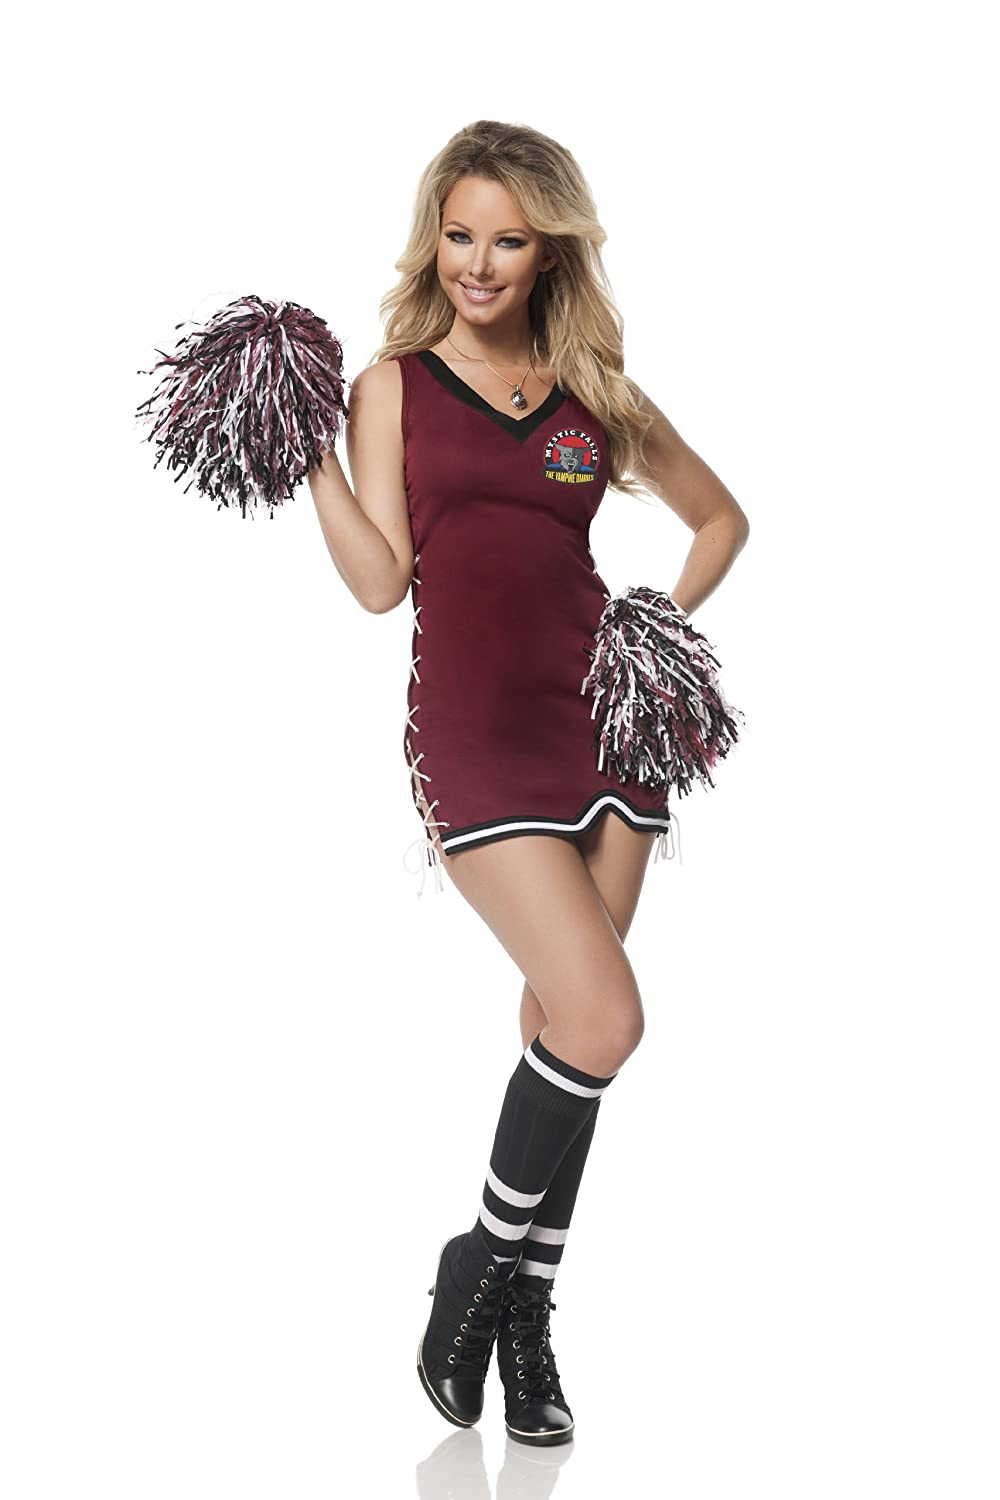 Mystery House Women's Mystic Falls Cheerleader